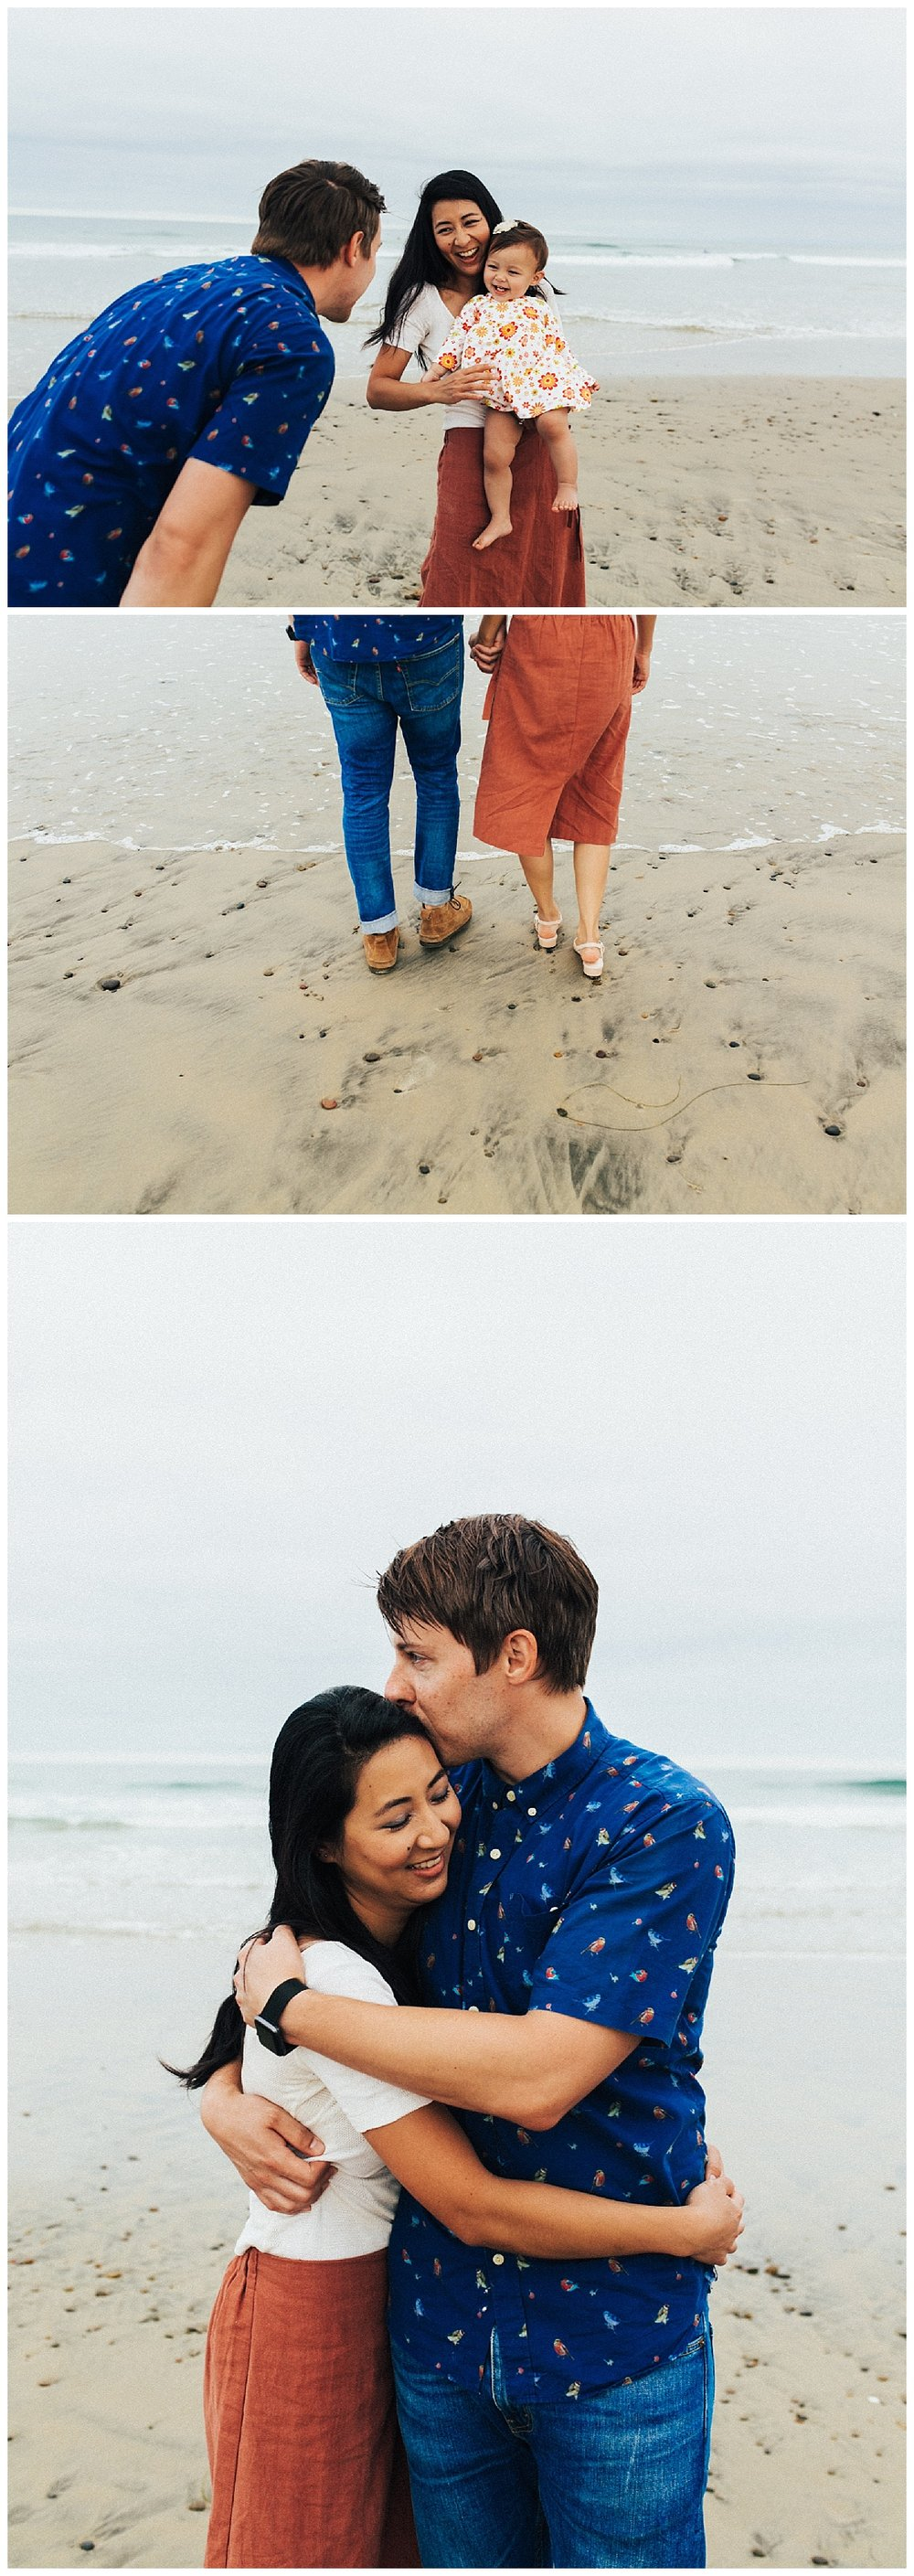 2018-07-31_0016SamErica Studios - Torrey Pines Family Couples Session.jpg